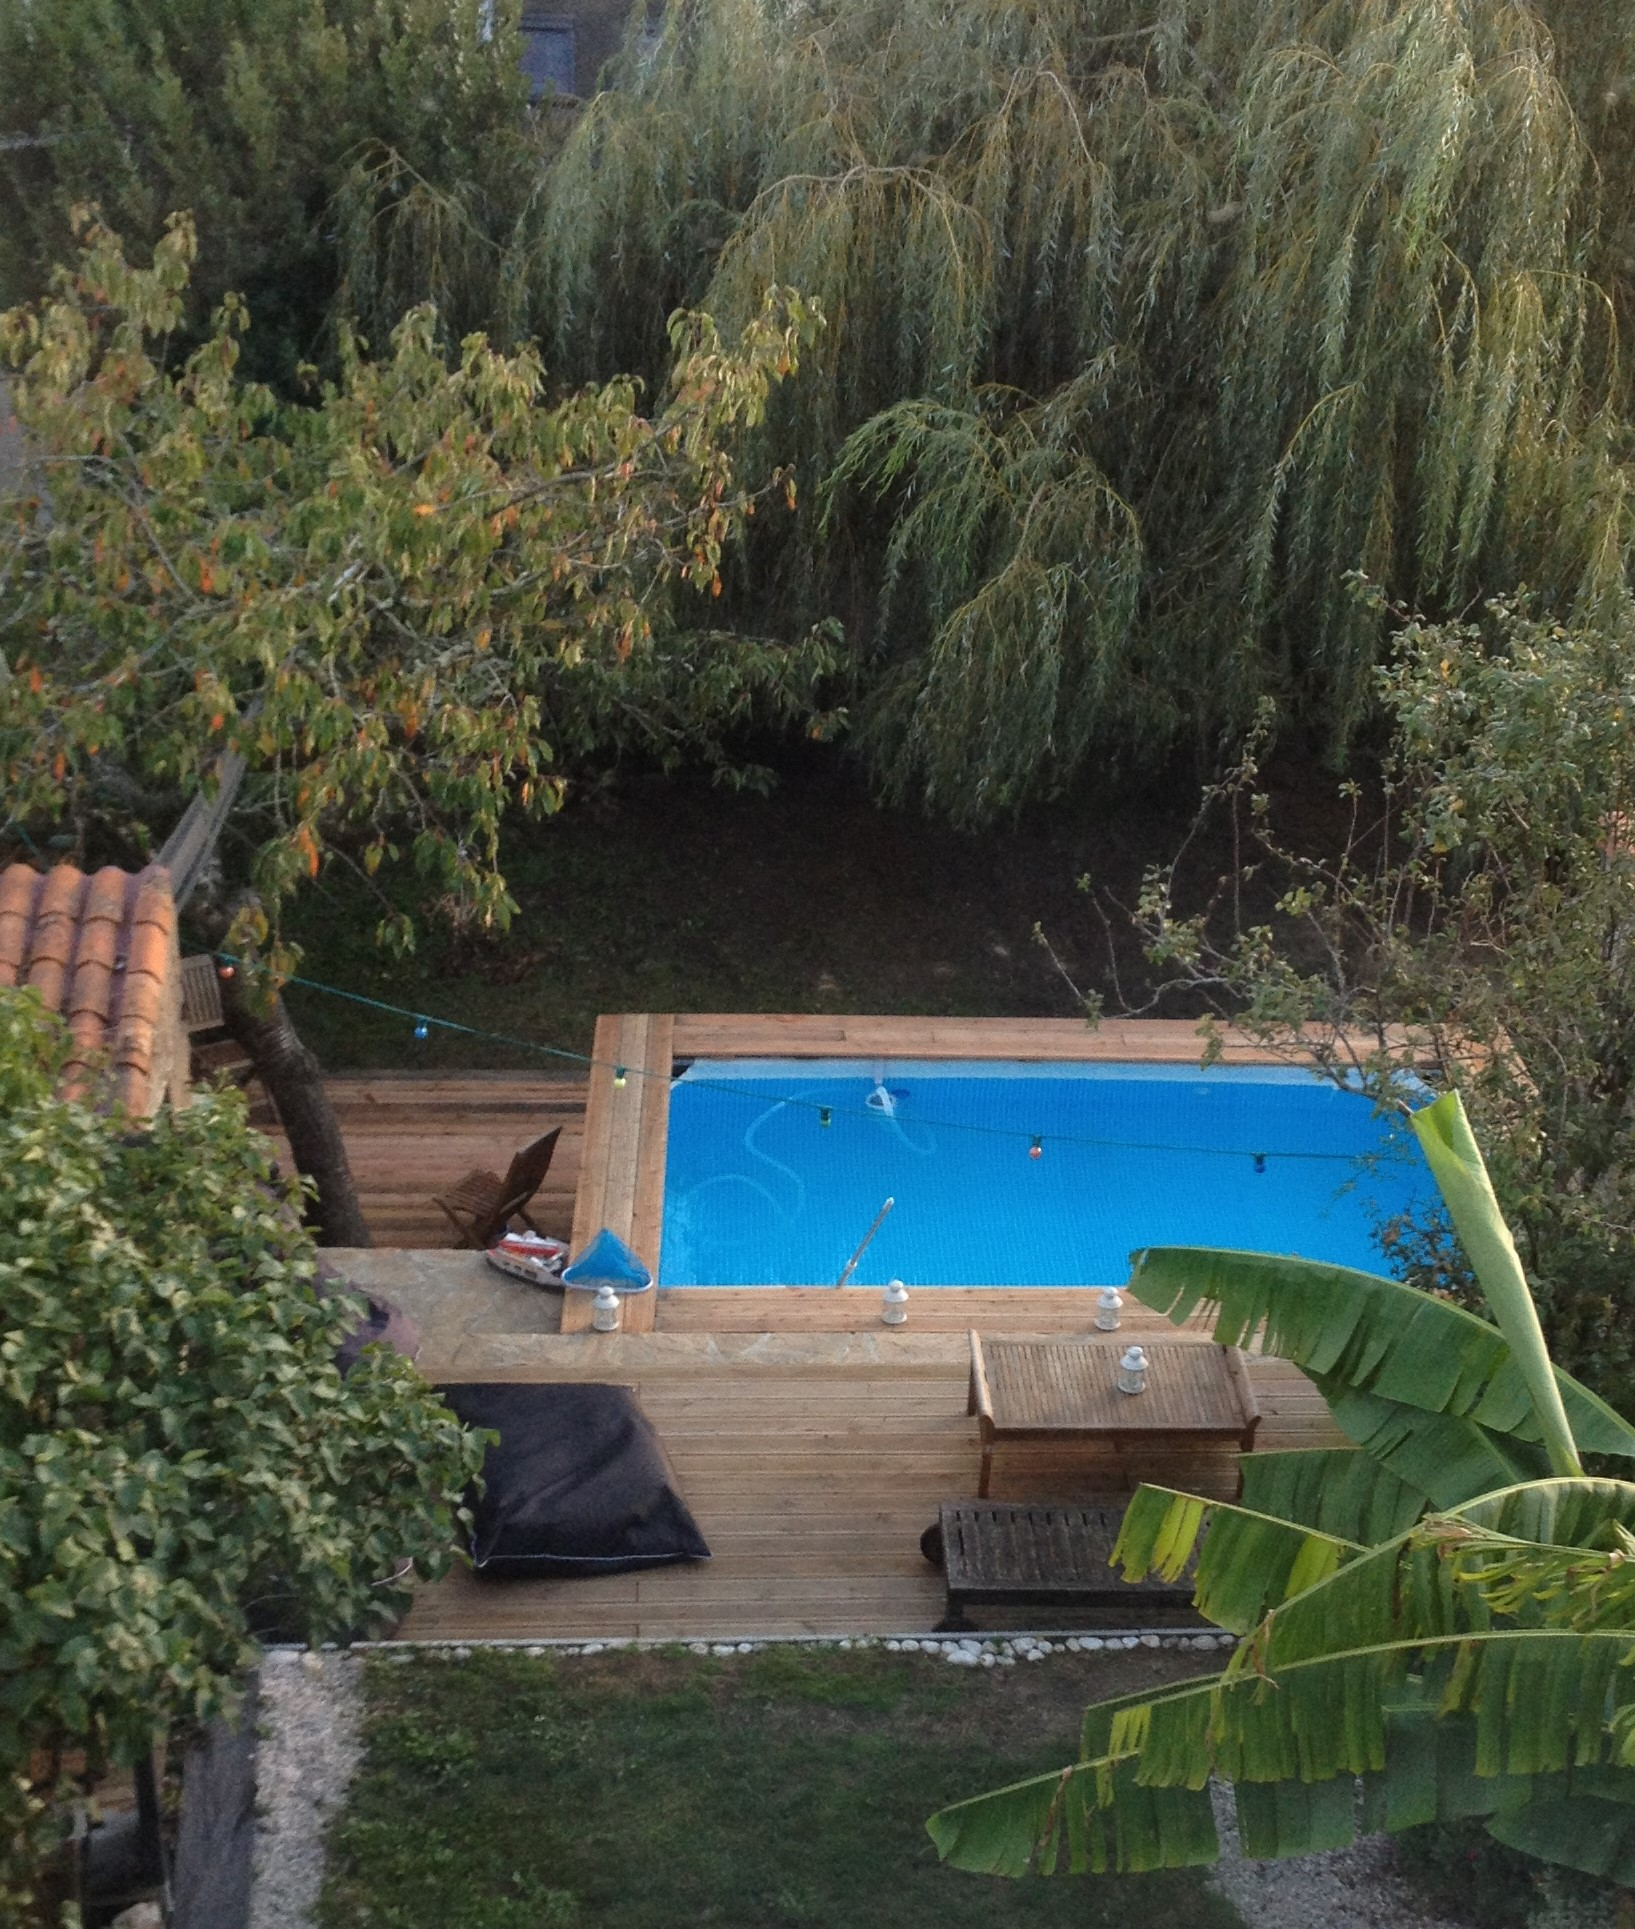 Comment encastrer sa piscine hors sol blog de raviday for Eclairage piscine hors sol sans percage